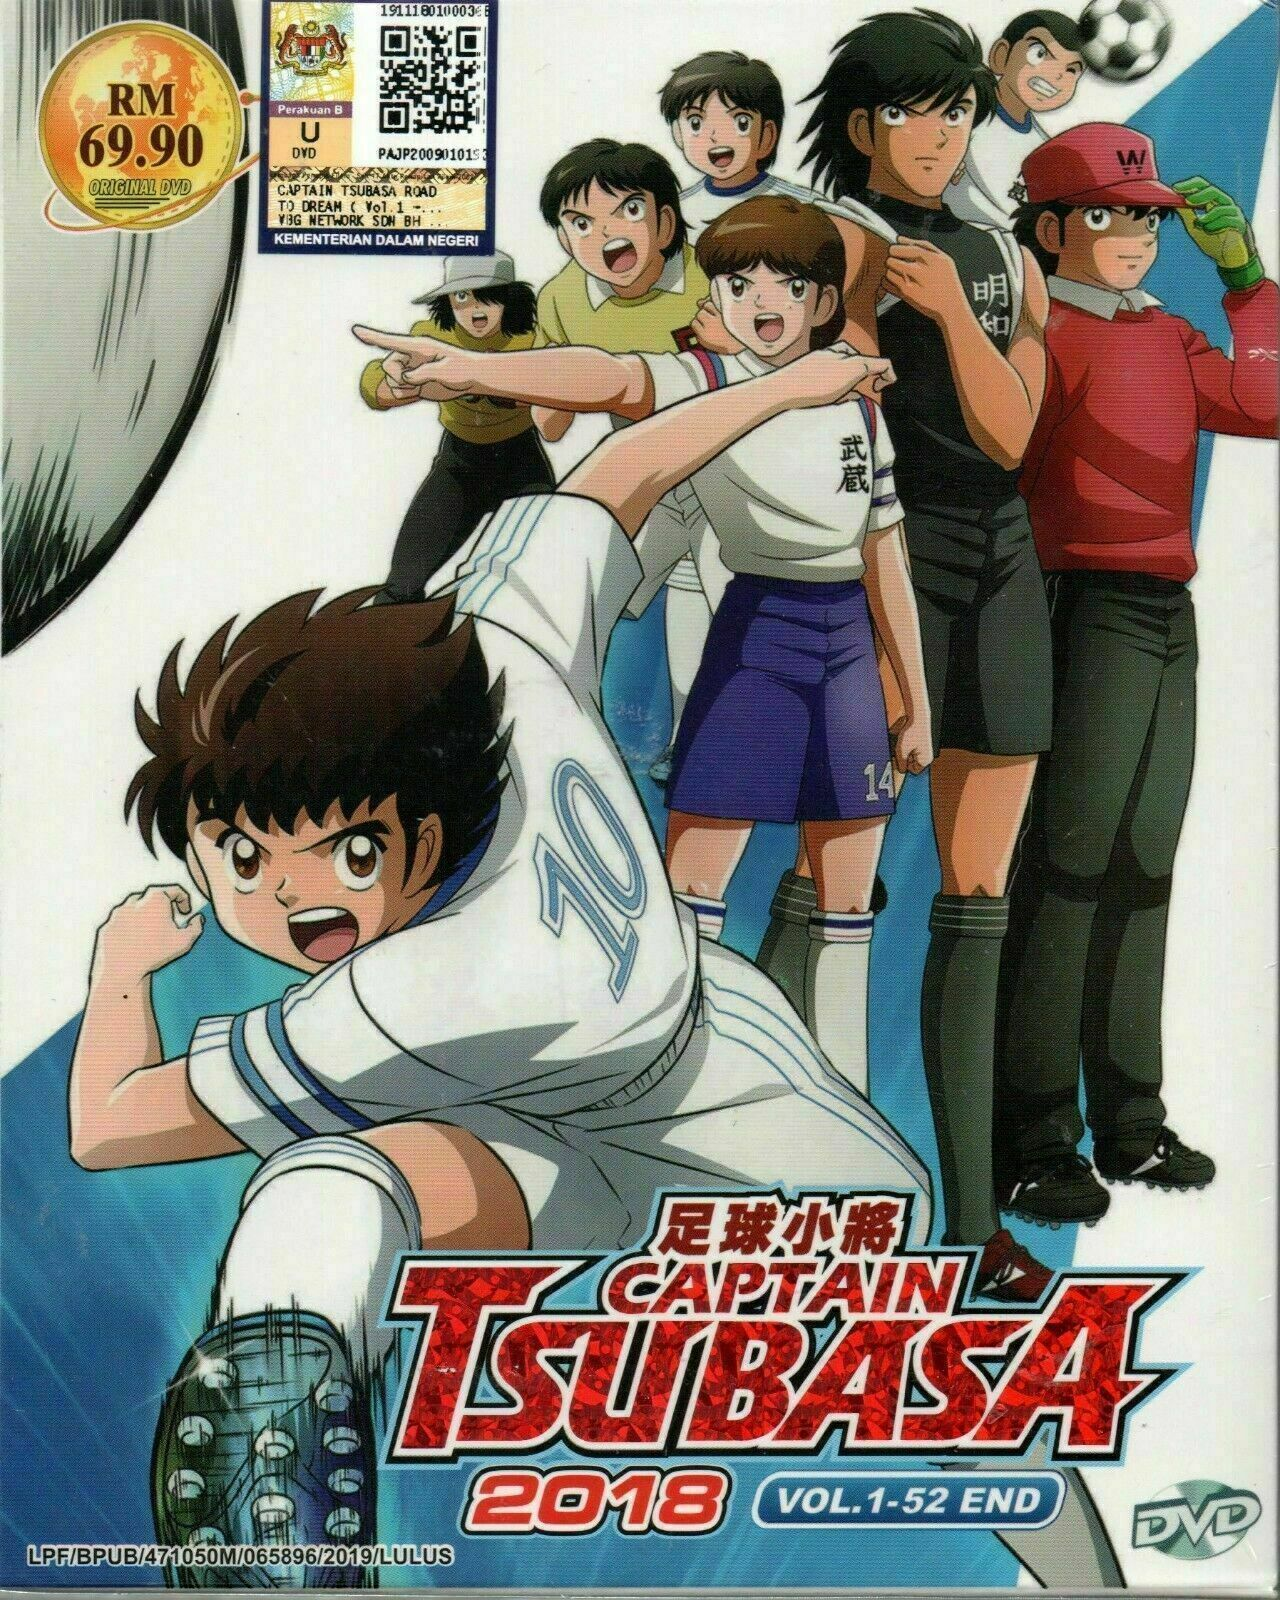 Captain Tsubasa (2018) VOL.1-52 End - US Seller ship out From USA